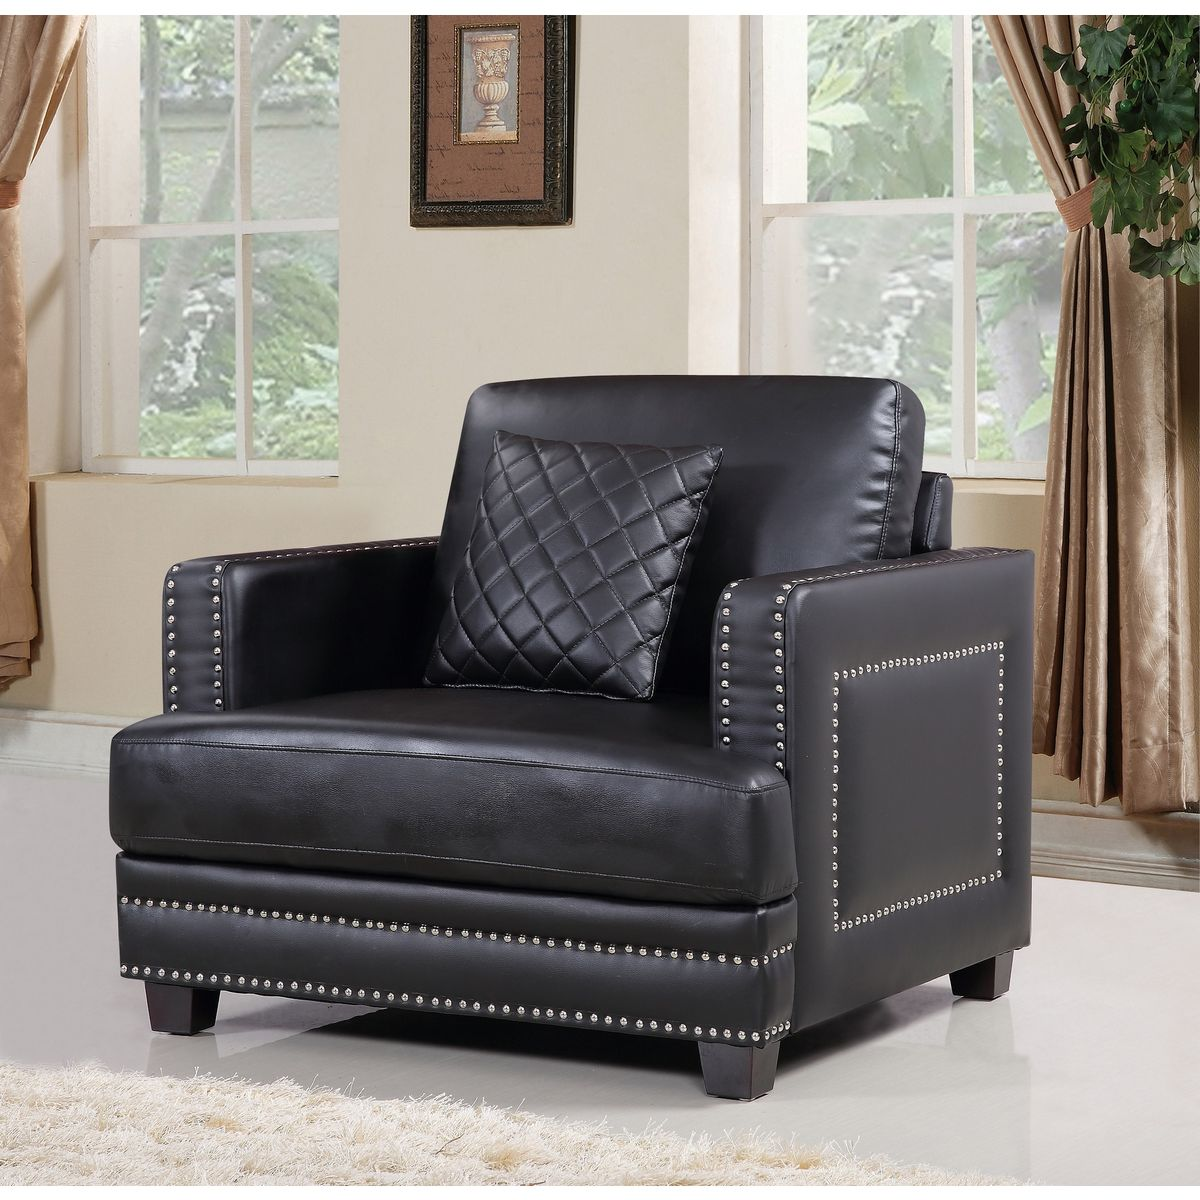 Ferrara Black Leather Arm Chair W Silver Nailhead Quilted Pillow By Meridian Furniture